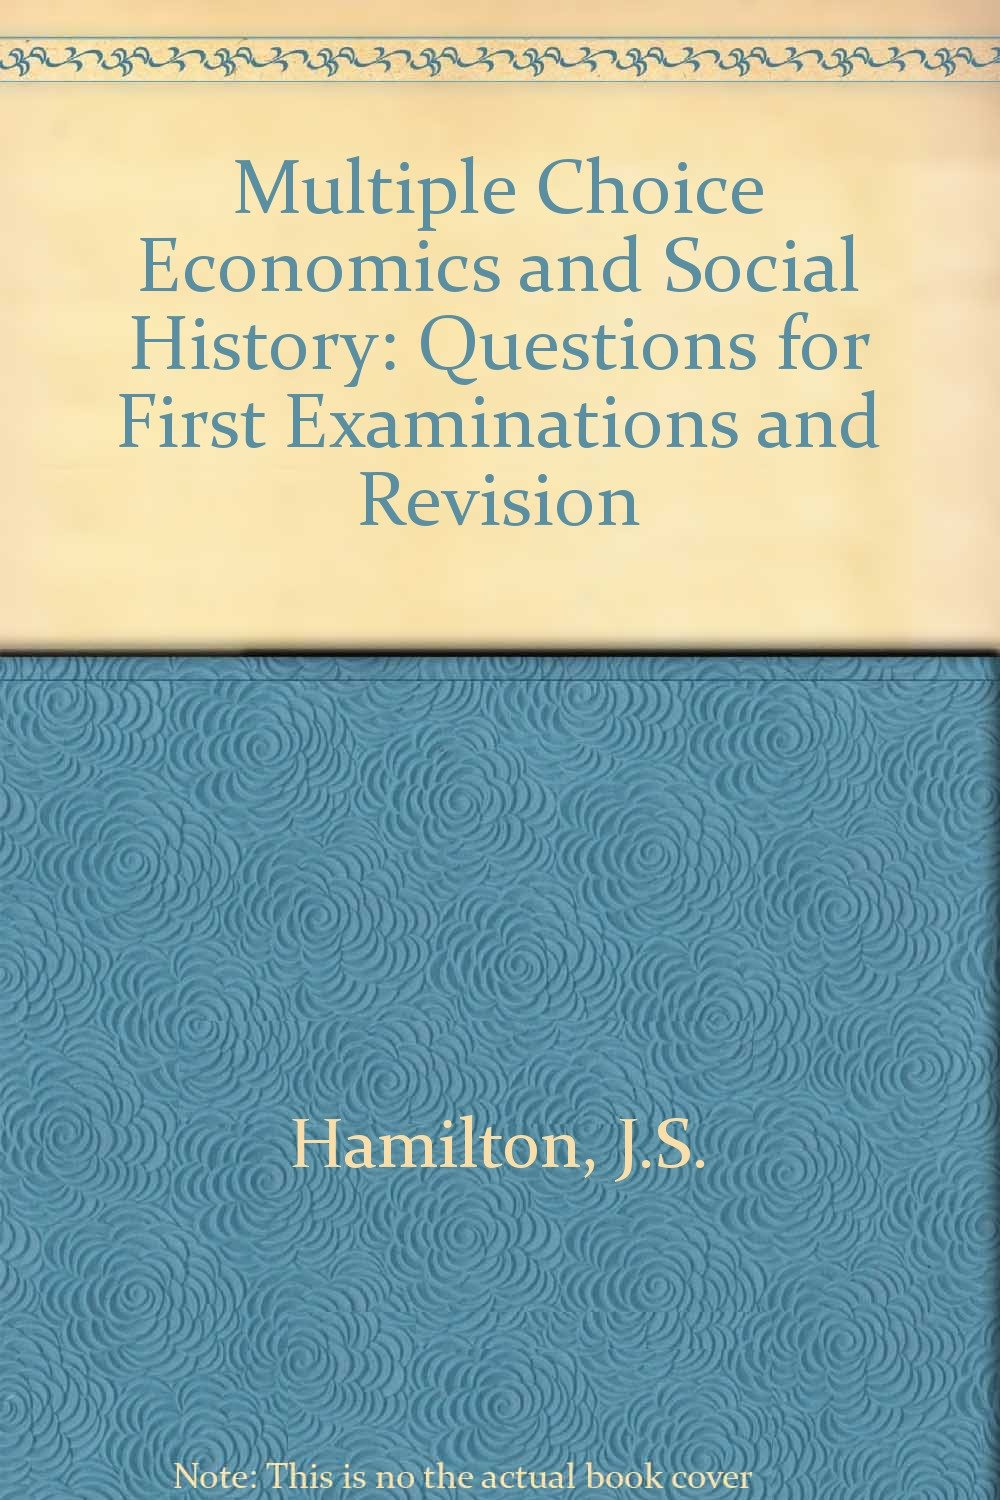 multiple question related to history of economics thoughts